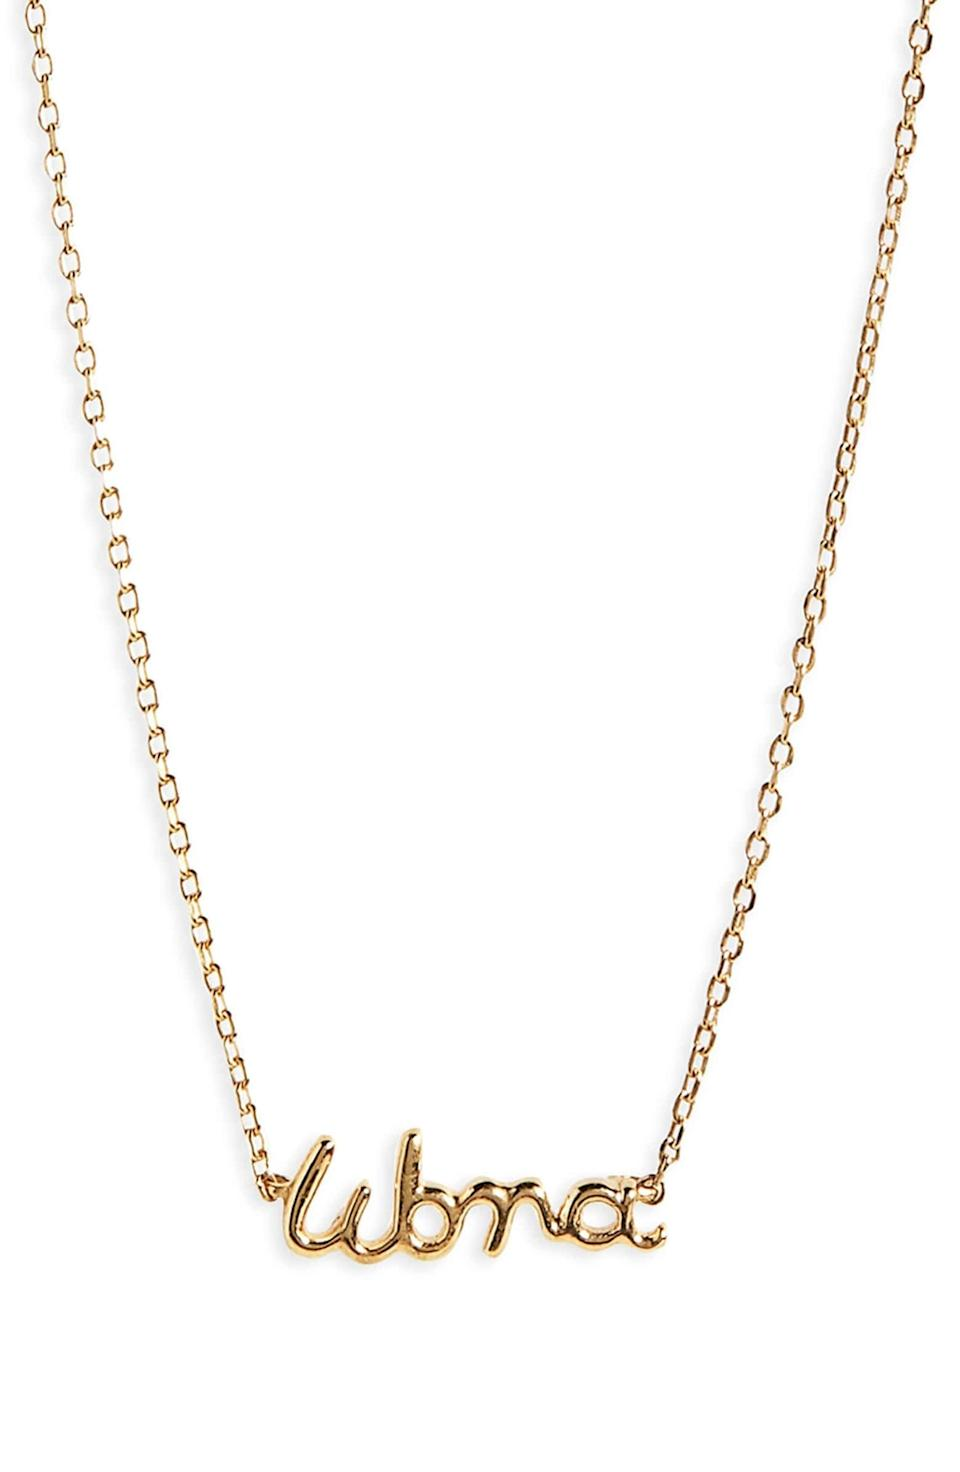 Cyber Monday Is All About These Epic Jewelry Deals - We're ...